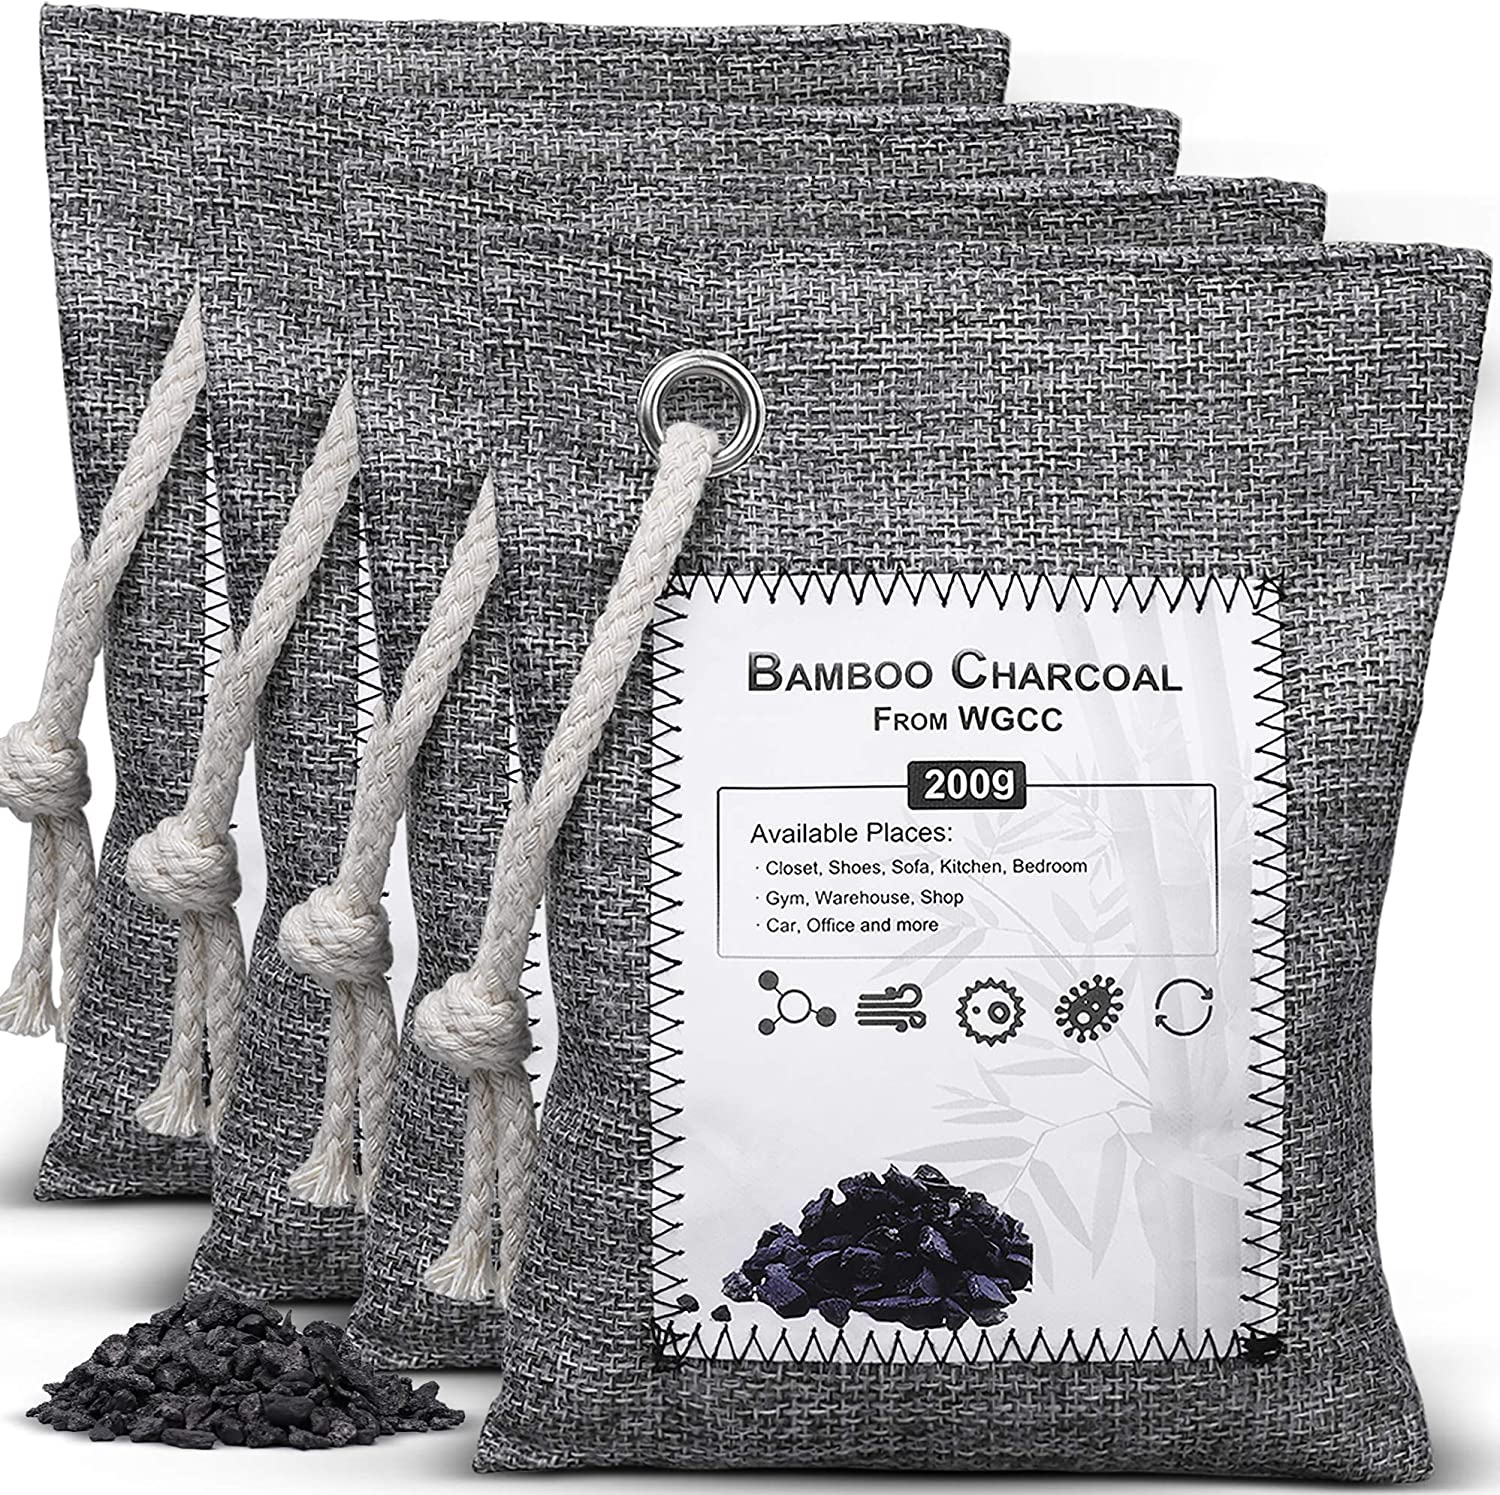 WGCC Activated Bamboo Charcoal Air Purifying Bags, [4 Pack 200g Each] Natural Fresh Bags Odor eliminators Absorber - Kid & Pet Friendly Air Fresheners for Home, Car, Shoes, Closet, Pets and Basement